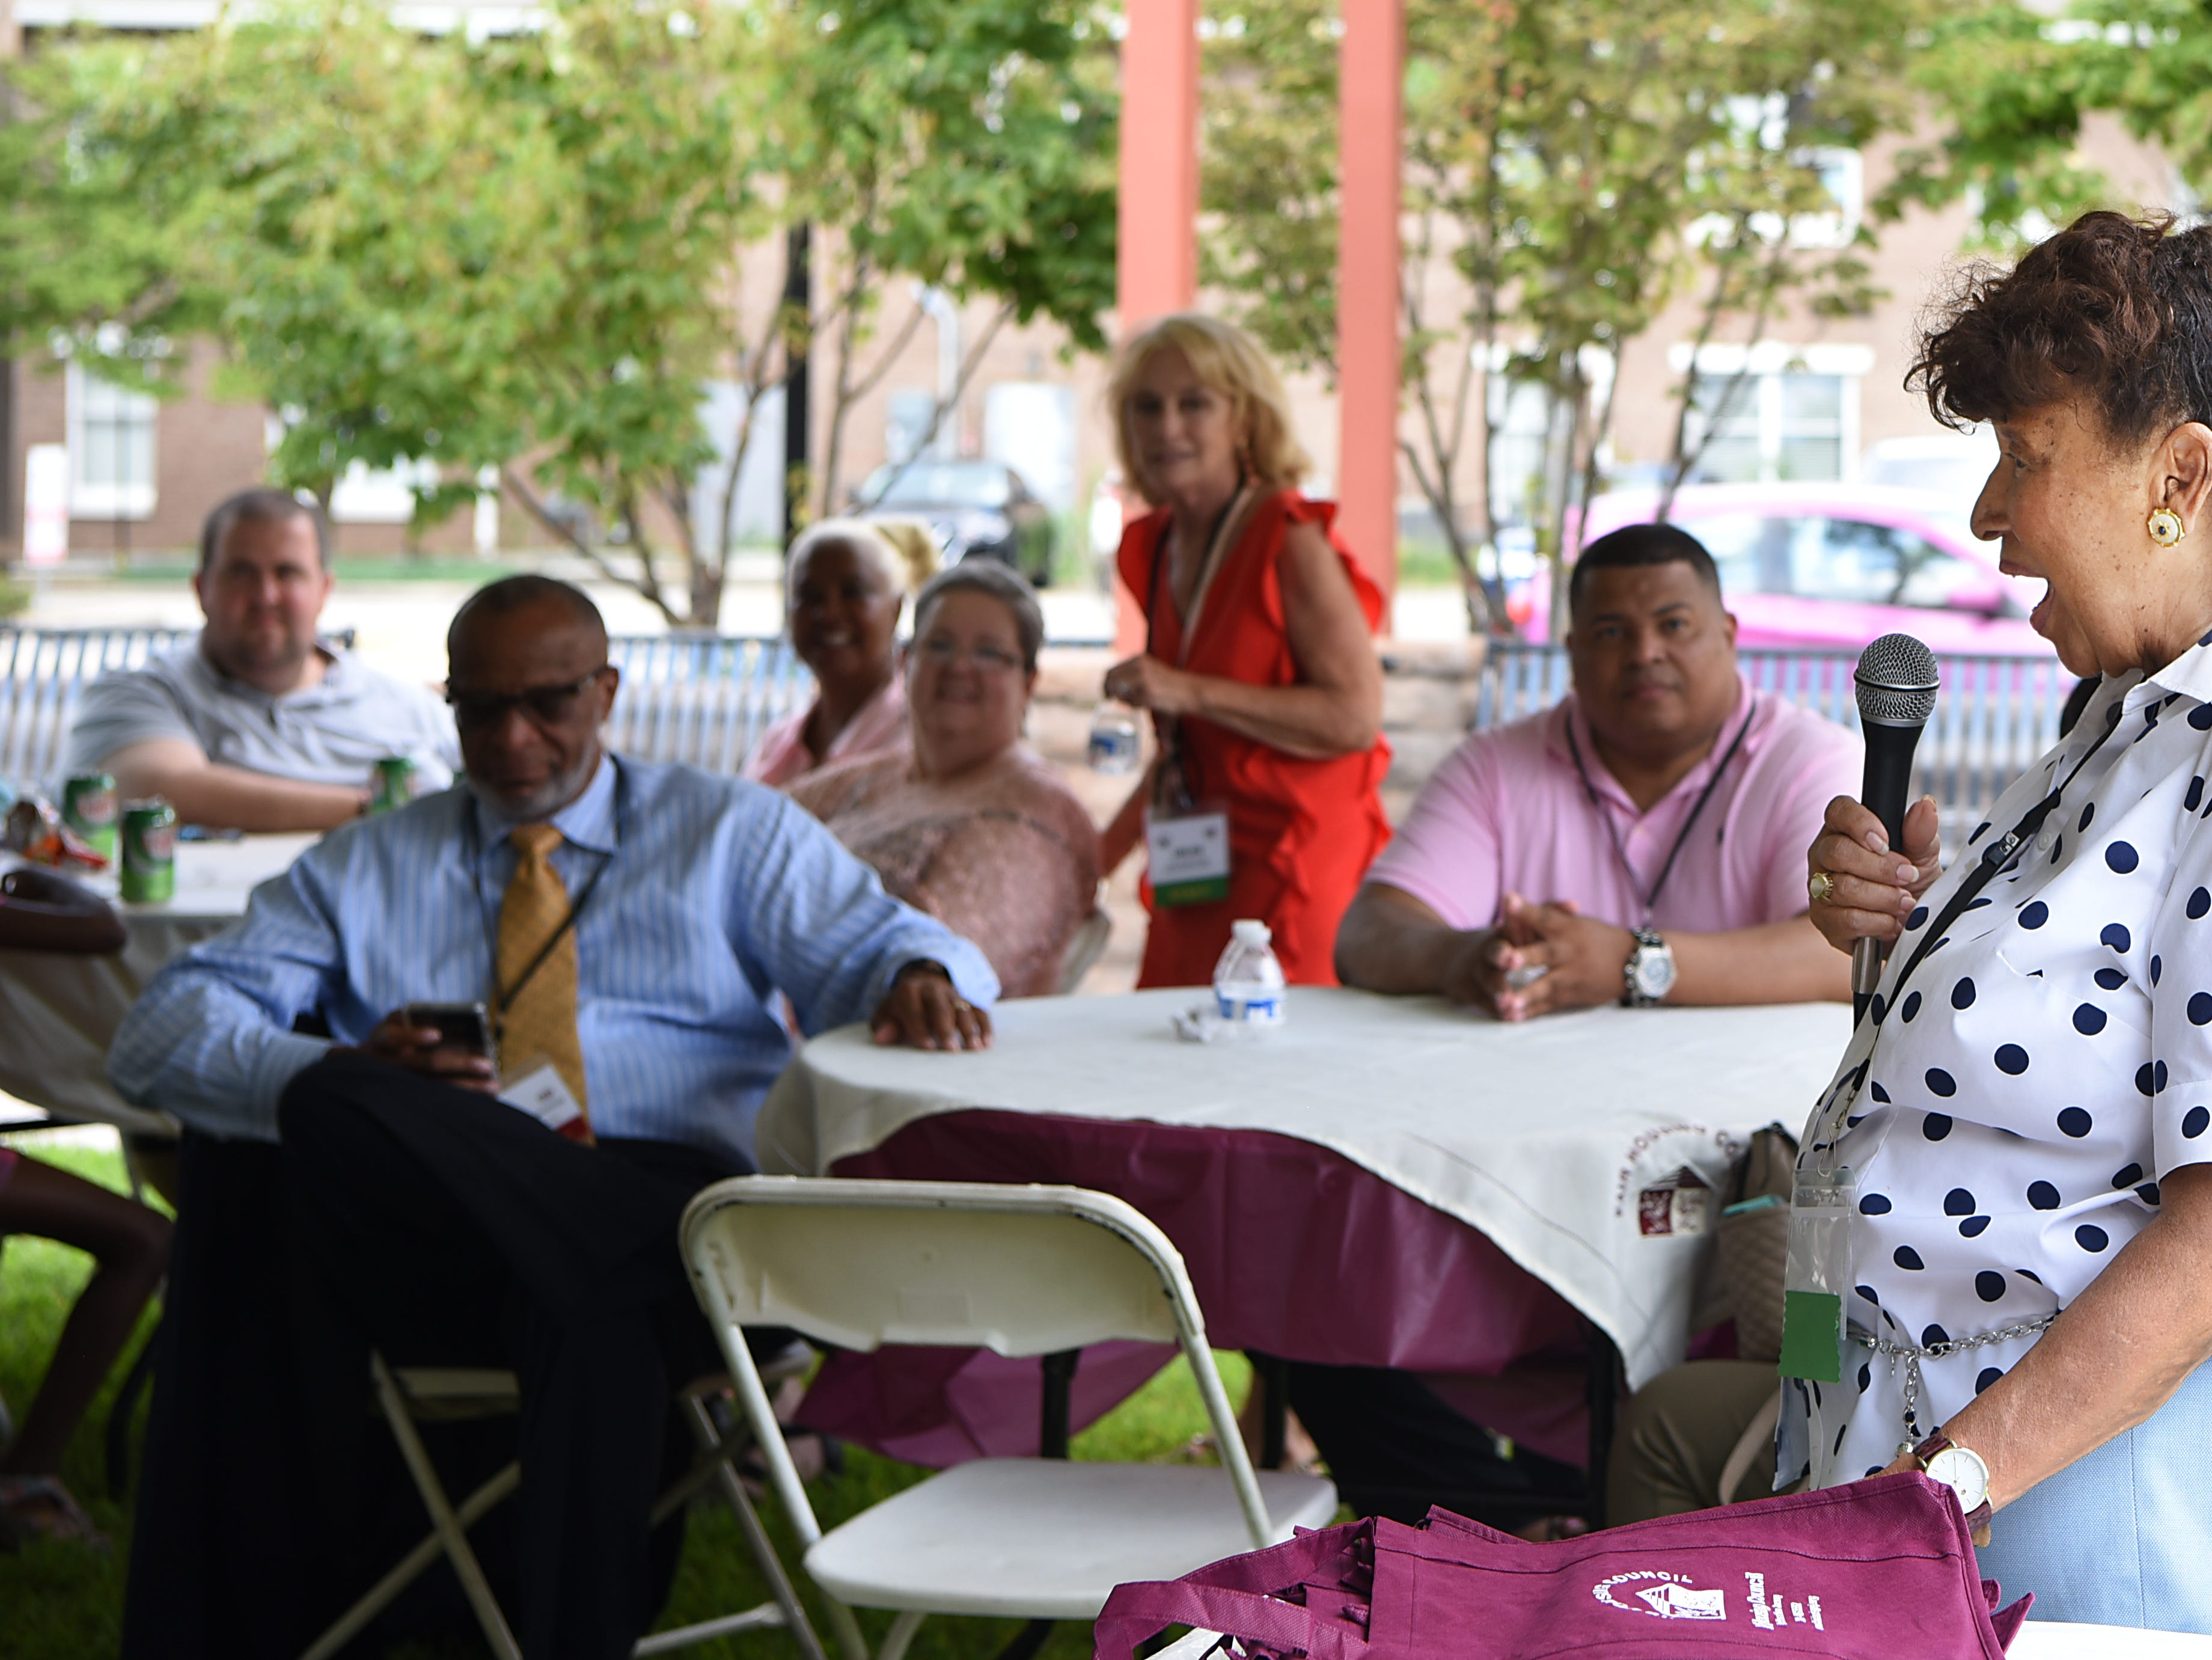 Lee Porter says a few words during the Fair Housing Council of Northern New Jersey picnic in Hackensack on Friday August 10, 2018.